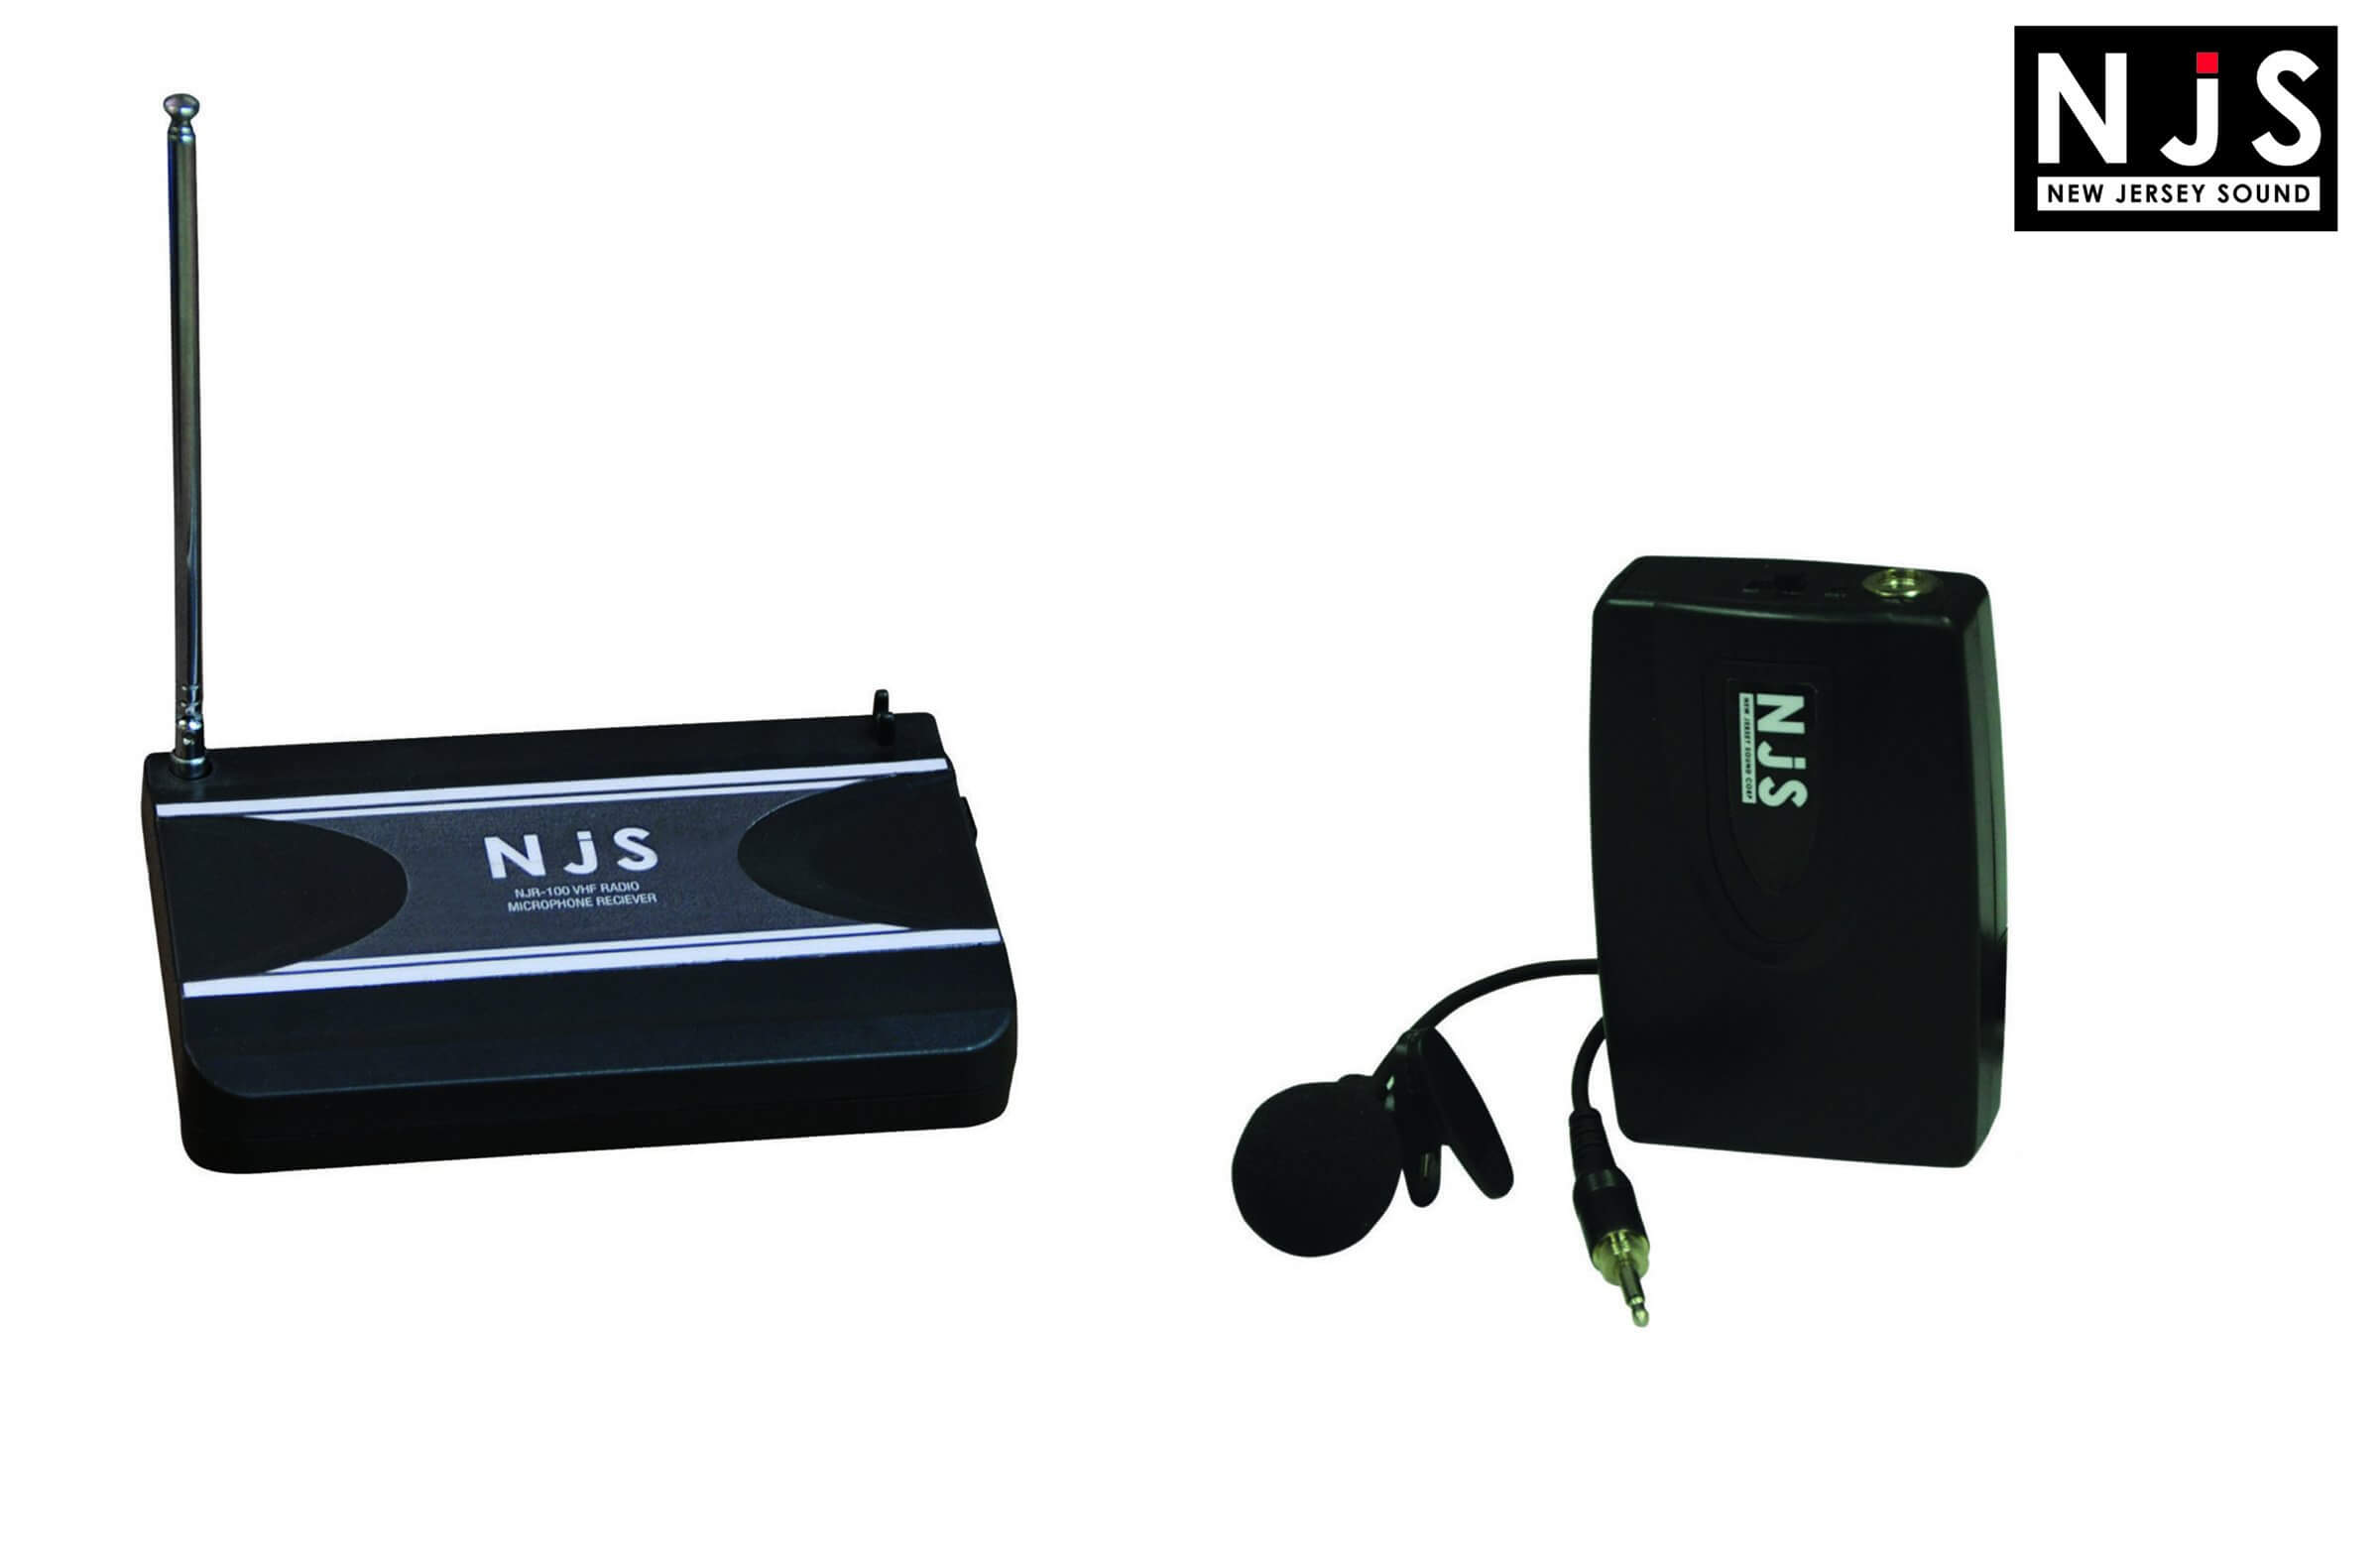 NJS 175.0 MHz VHF Tie Clip Radio Microphone System